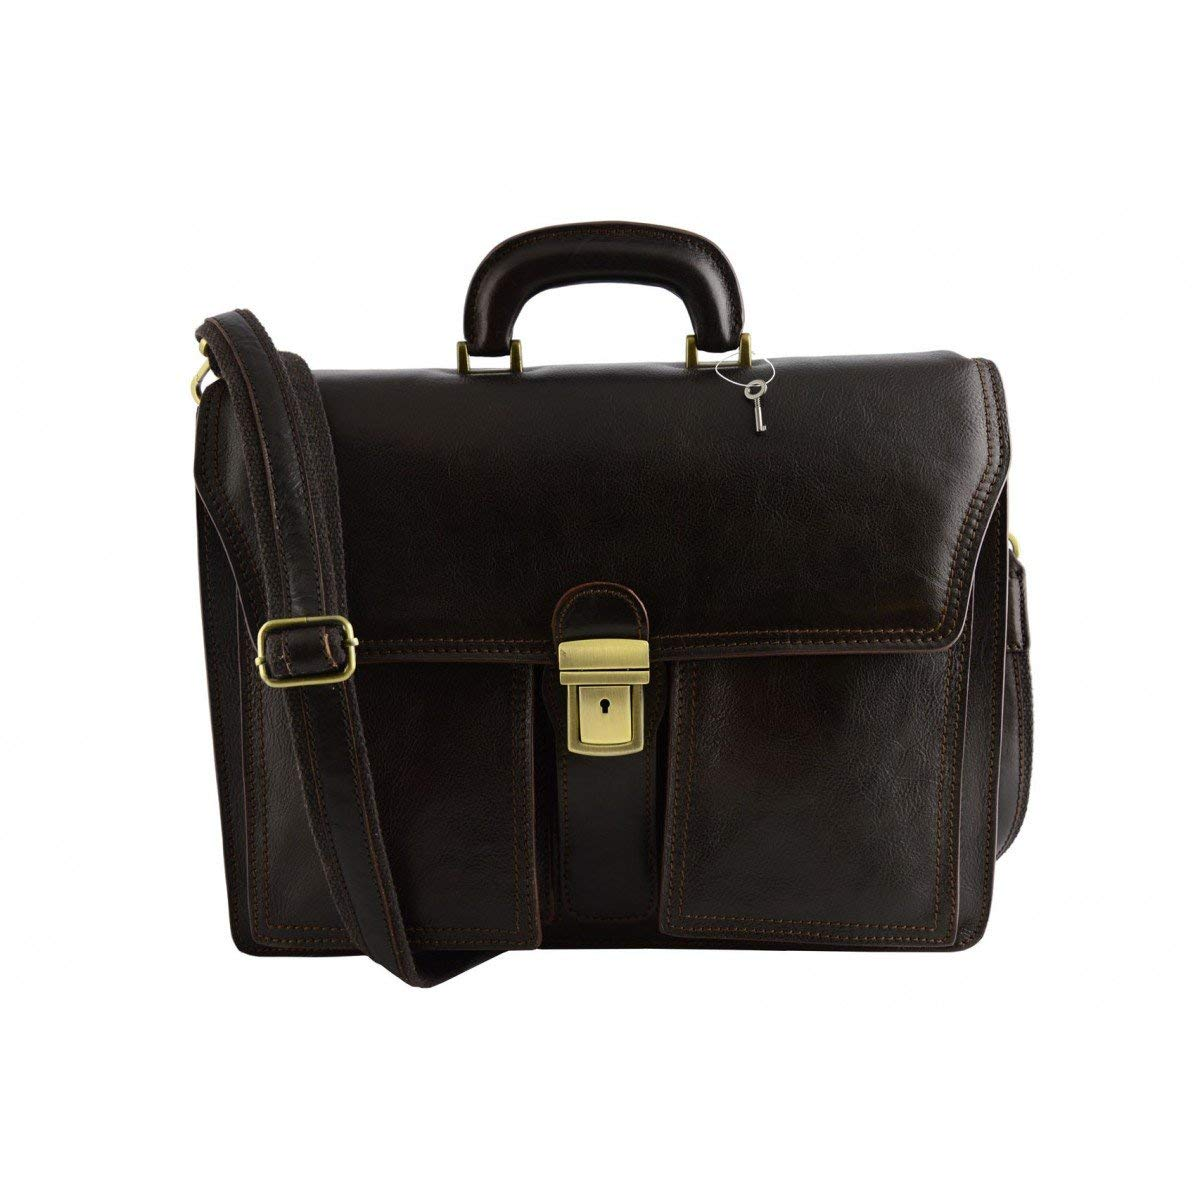 Dream Leather Bags Made in Italy Genuine Leather Genuine Leather Business Bag Color Dark Brown